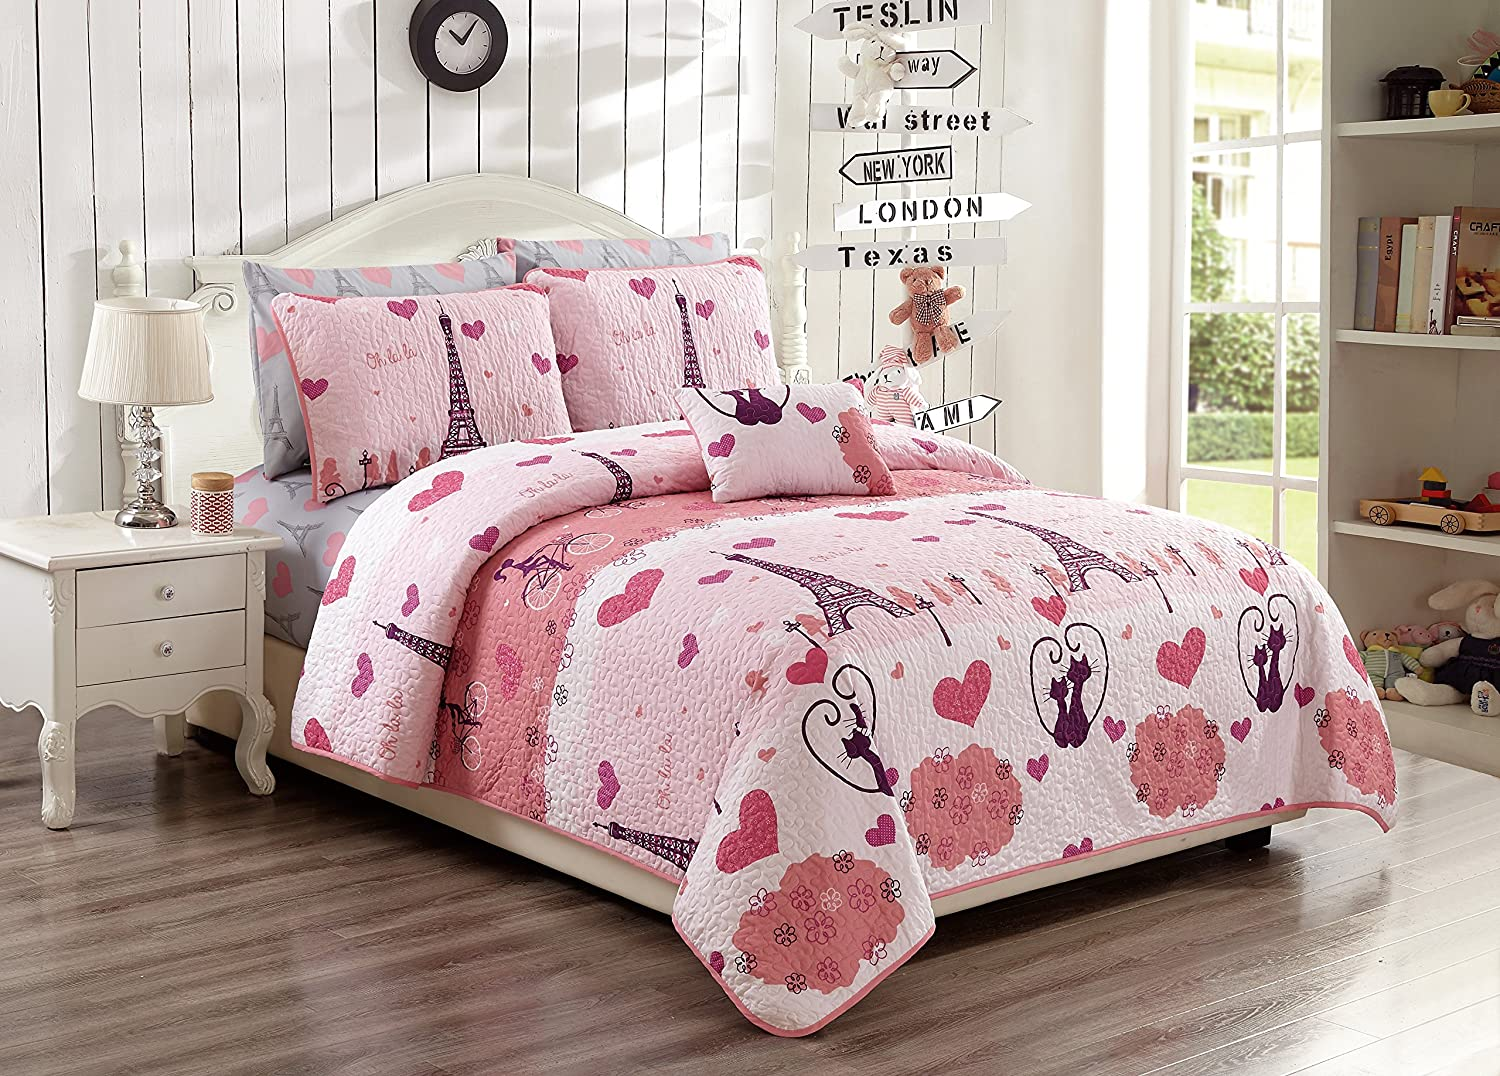 MK Home 4pc Full/Queen Bedspread Set For Girls Paris Bedding Eiffel Tower Pink Grey New